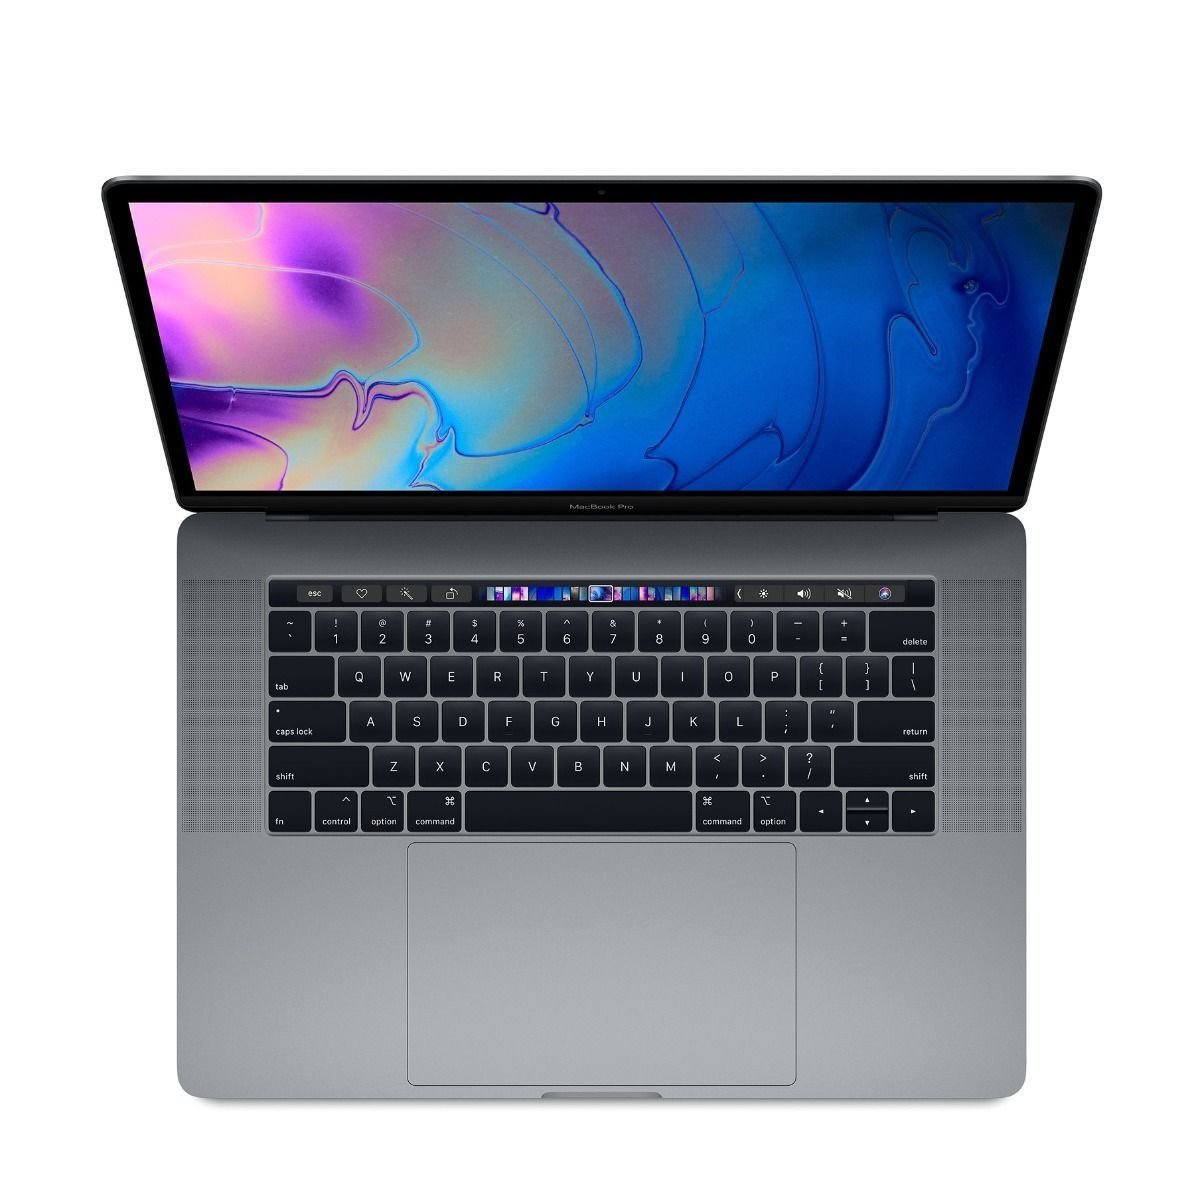 MacBook Pro 15-inch with Touch Bar (Mid 2019)